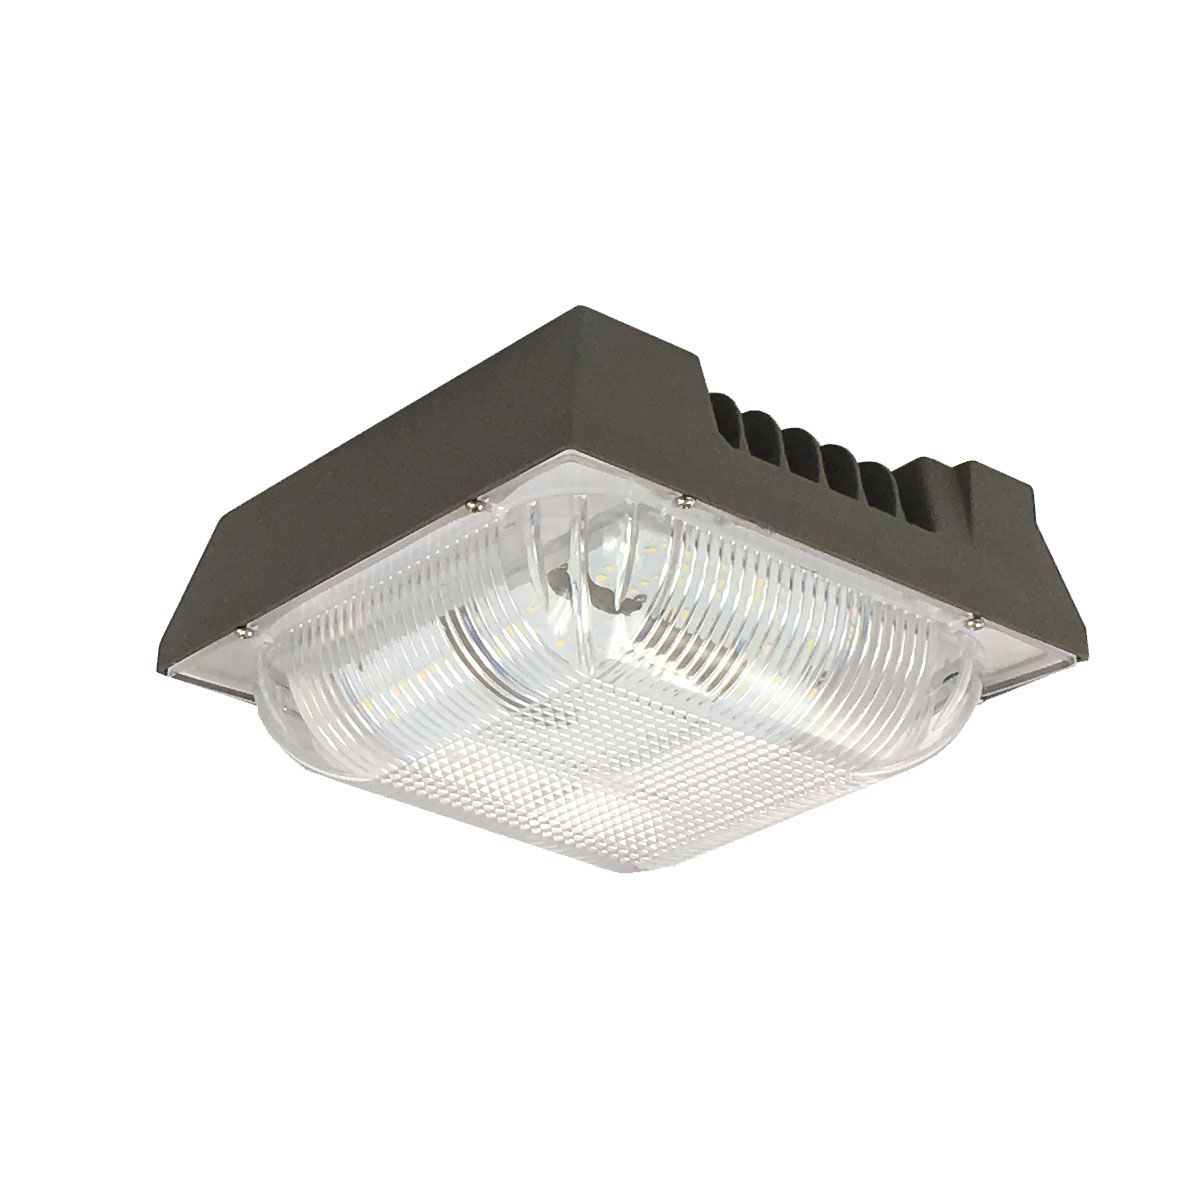 Led Ceiling Canopy Light Canopy Lights Outdoor Canopy Lights Led